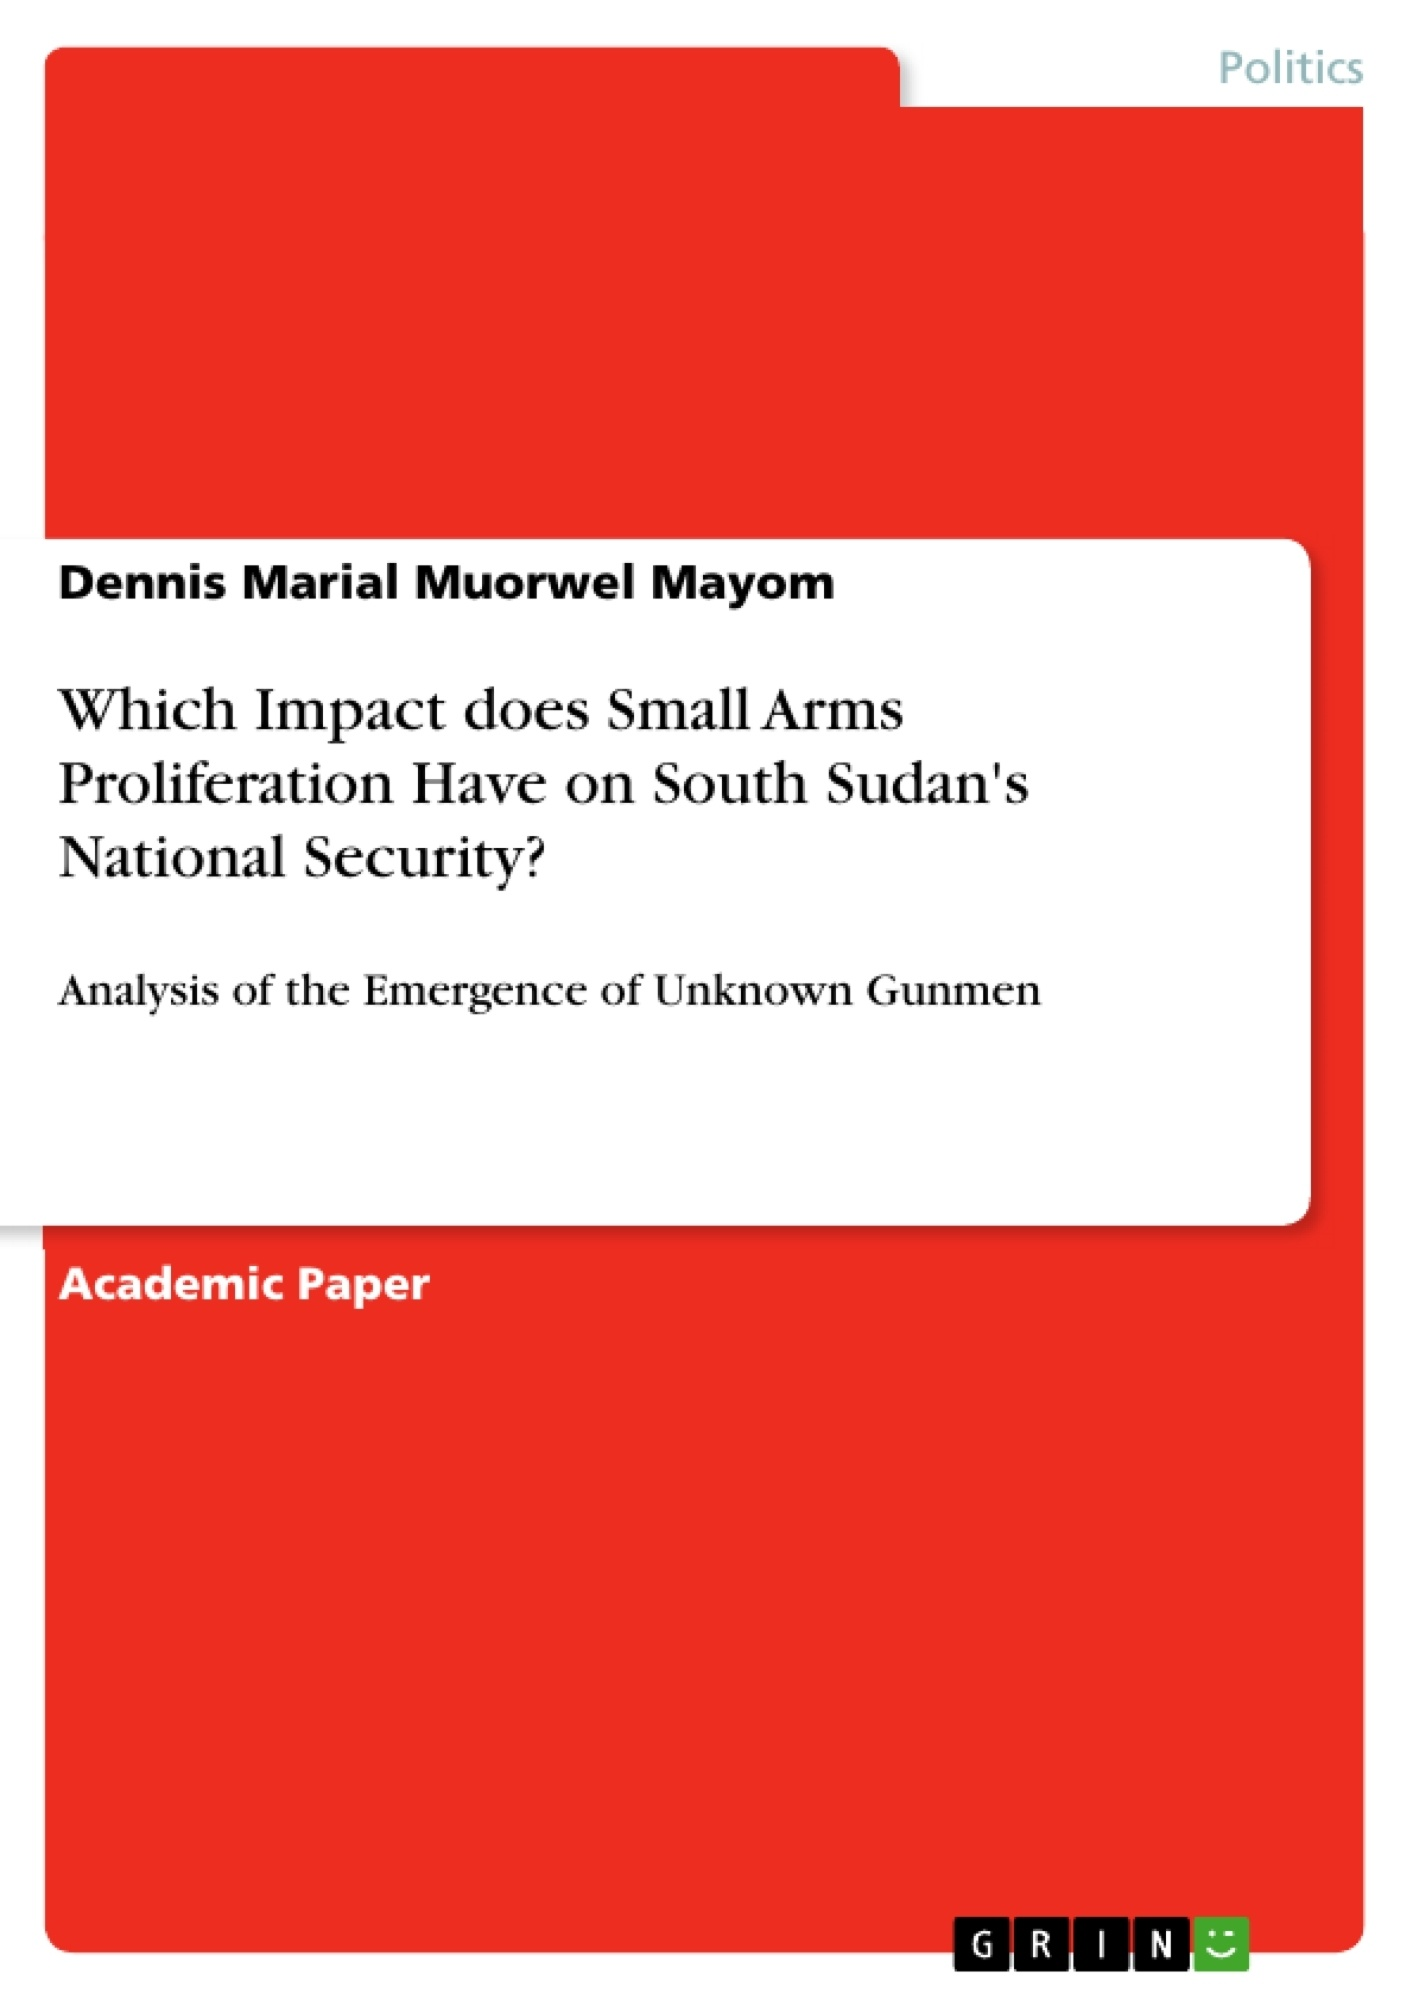 Title: Which Impact does Small Arms Proliferation Have on South Sudan's National Security?